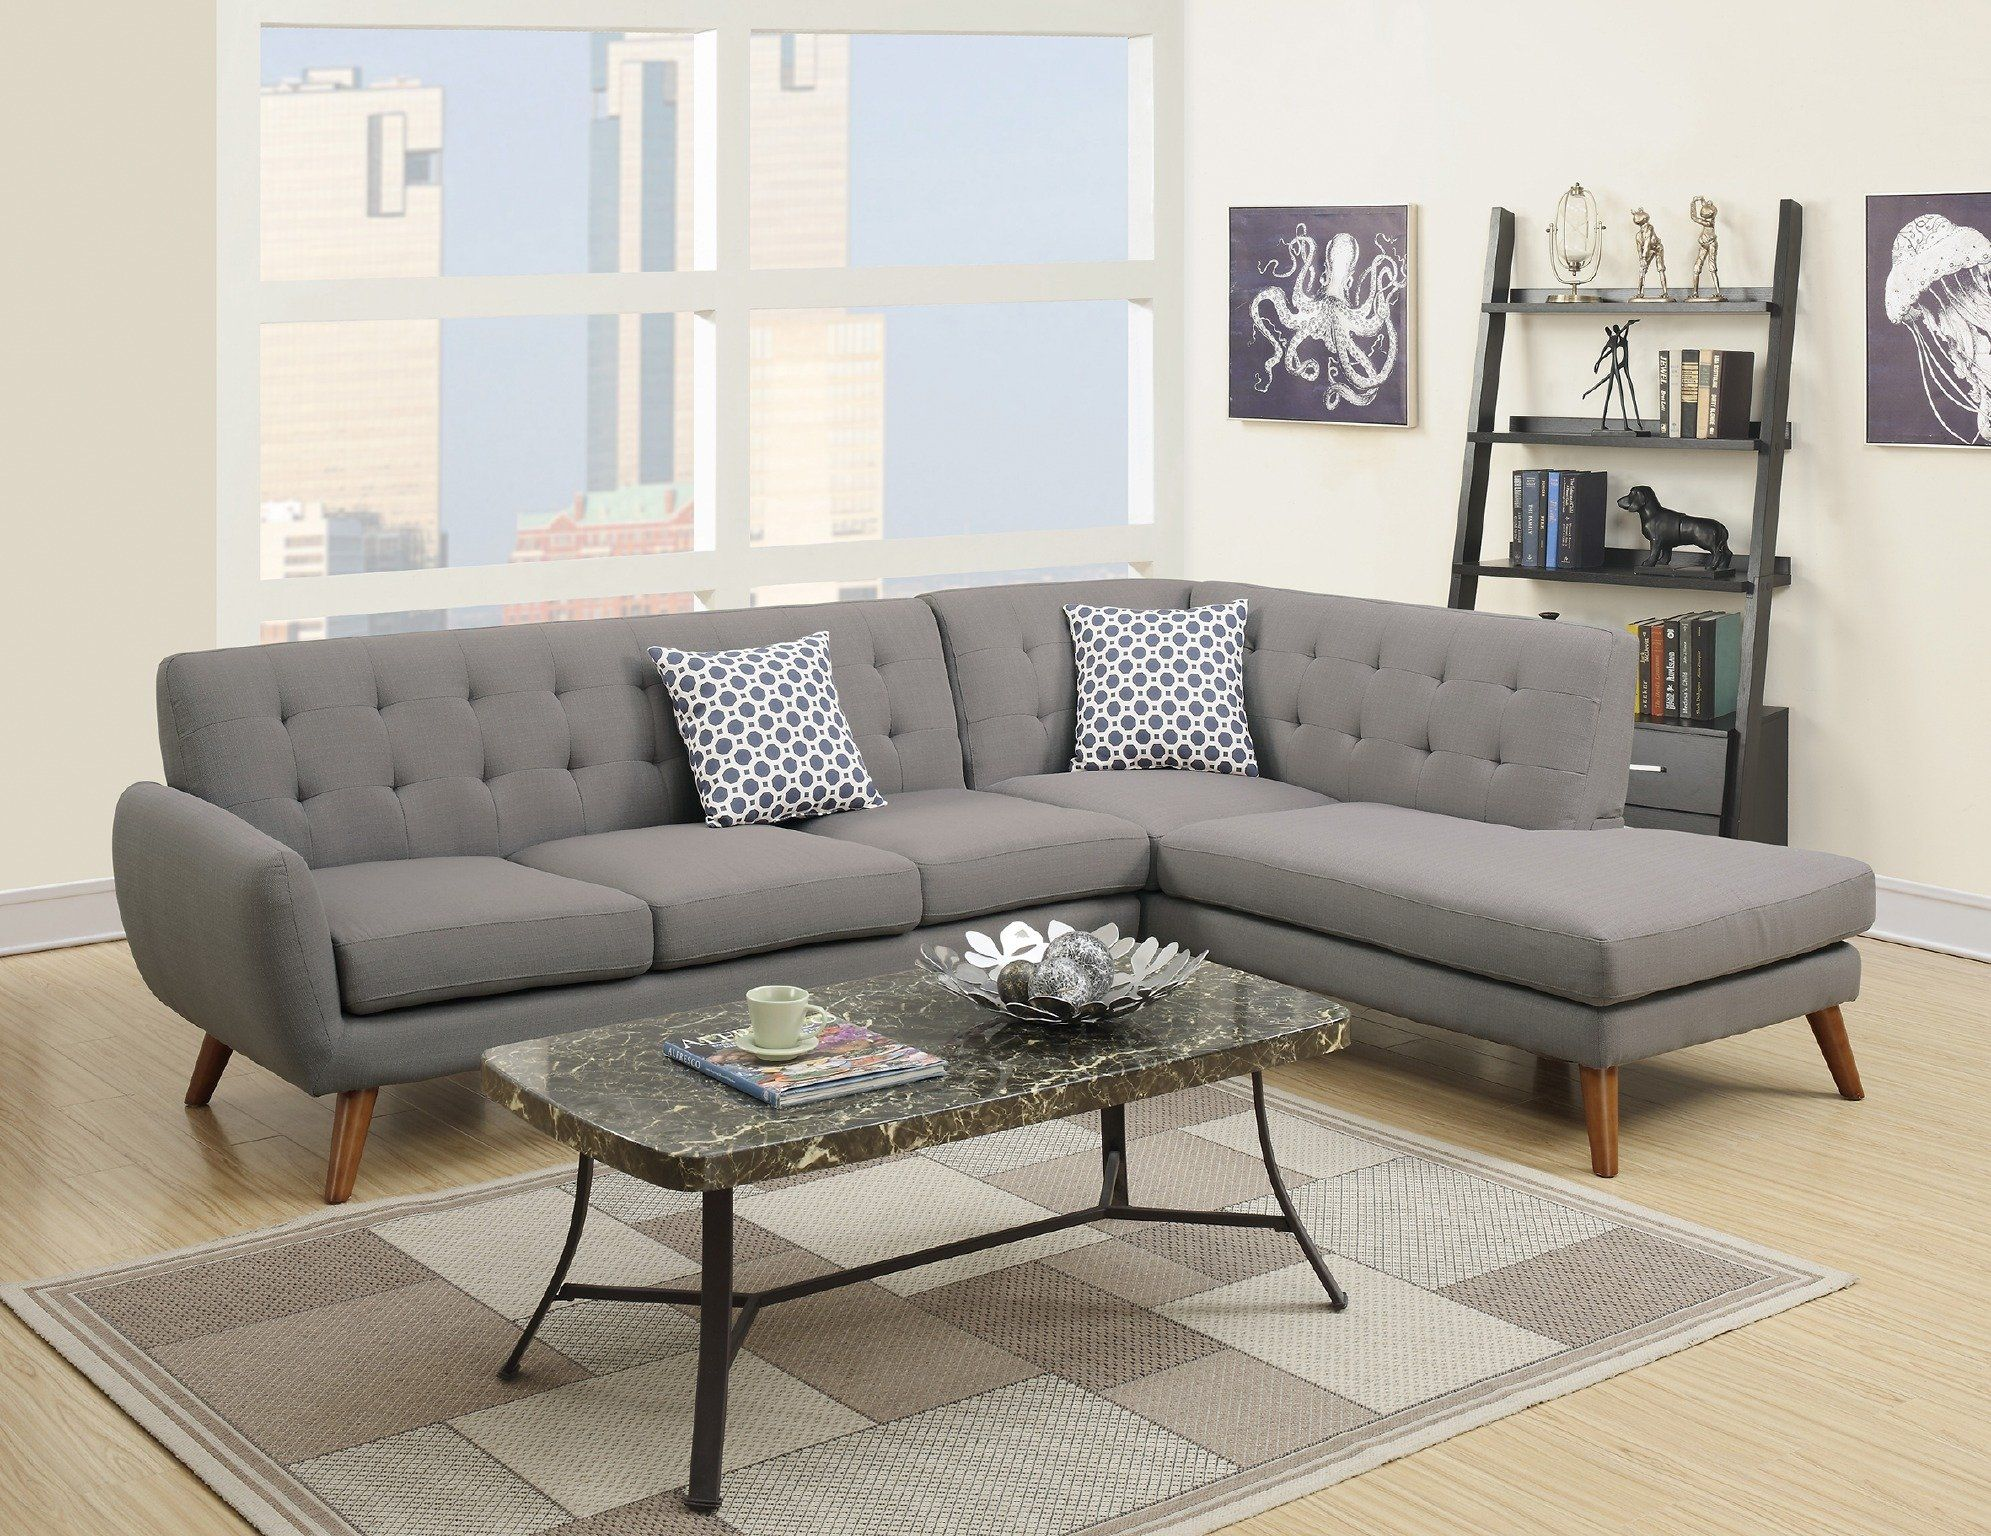 Miraculous Modern Retro Sectional Sofa Gray Modern Retro Styling Pdpeps Interior Chair Design Pdpepsorg